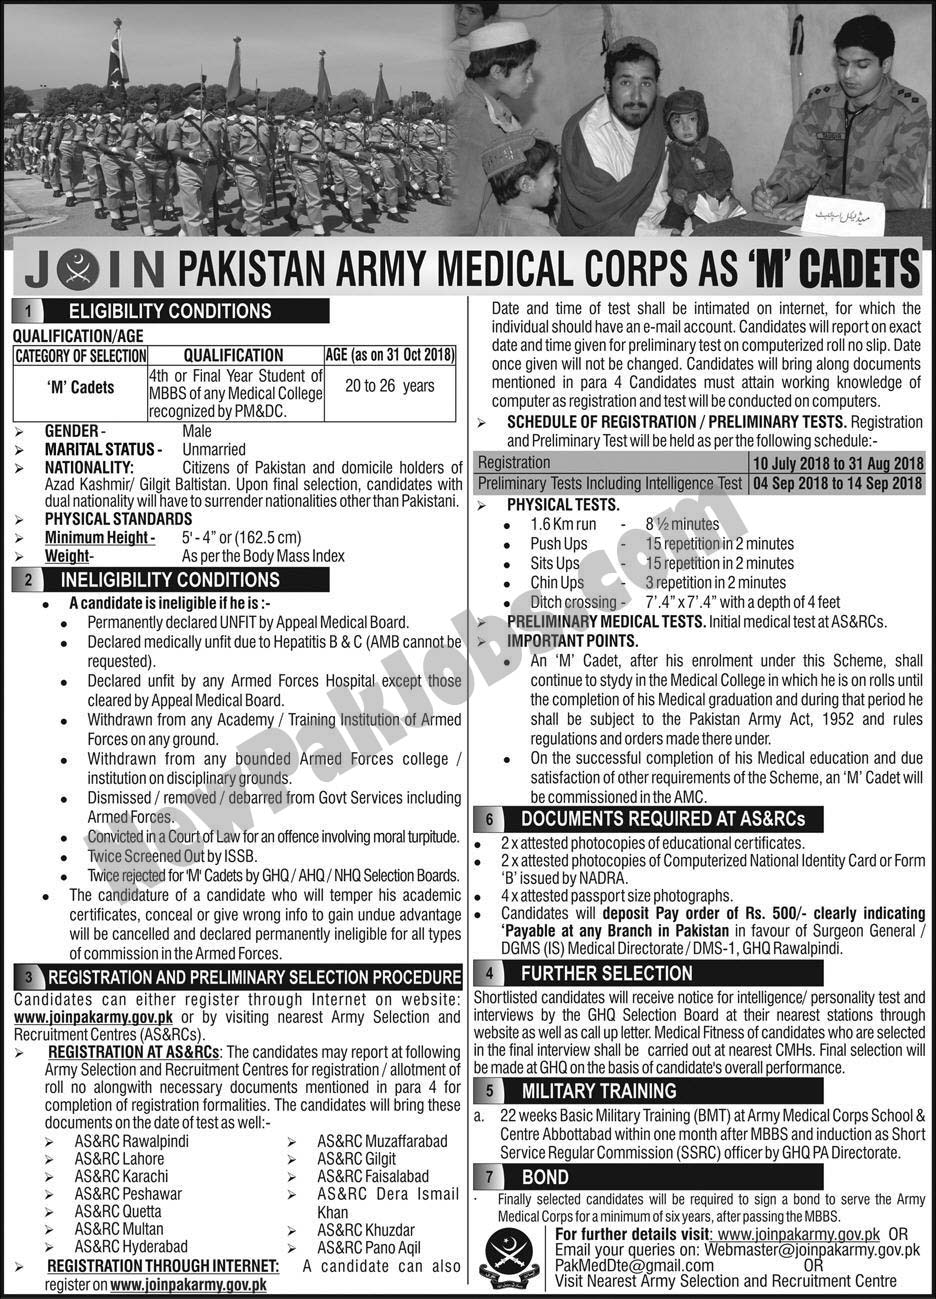 Join Pakistan Army Medical Corps as M Cadets July 2018 joinpakarmy.gov.pk